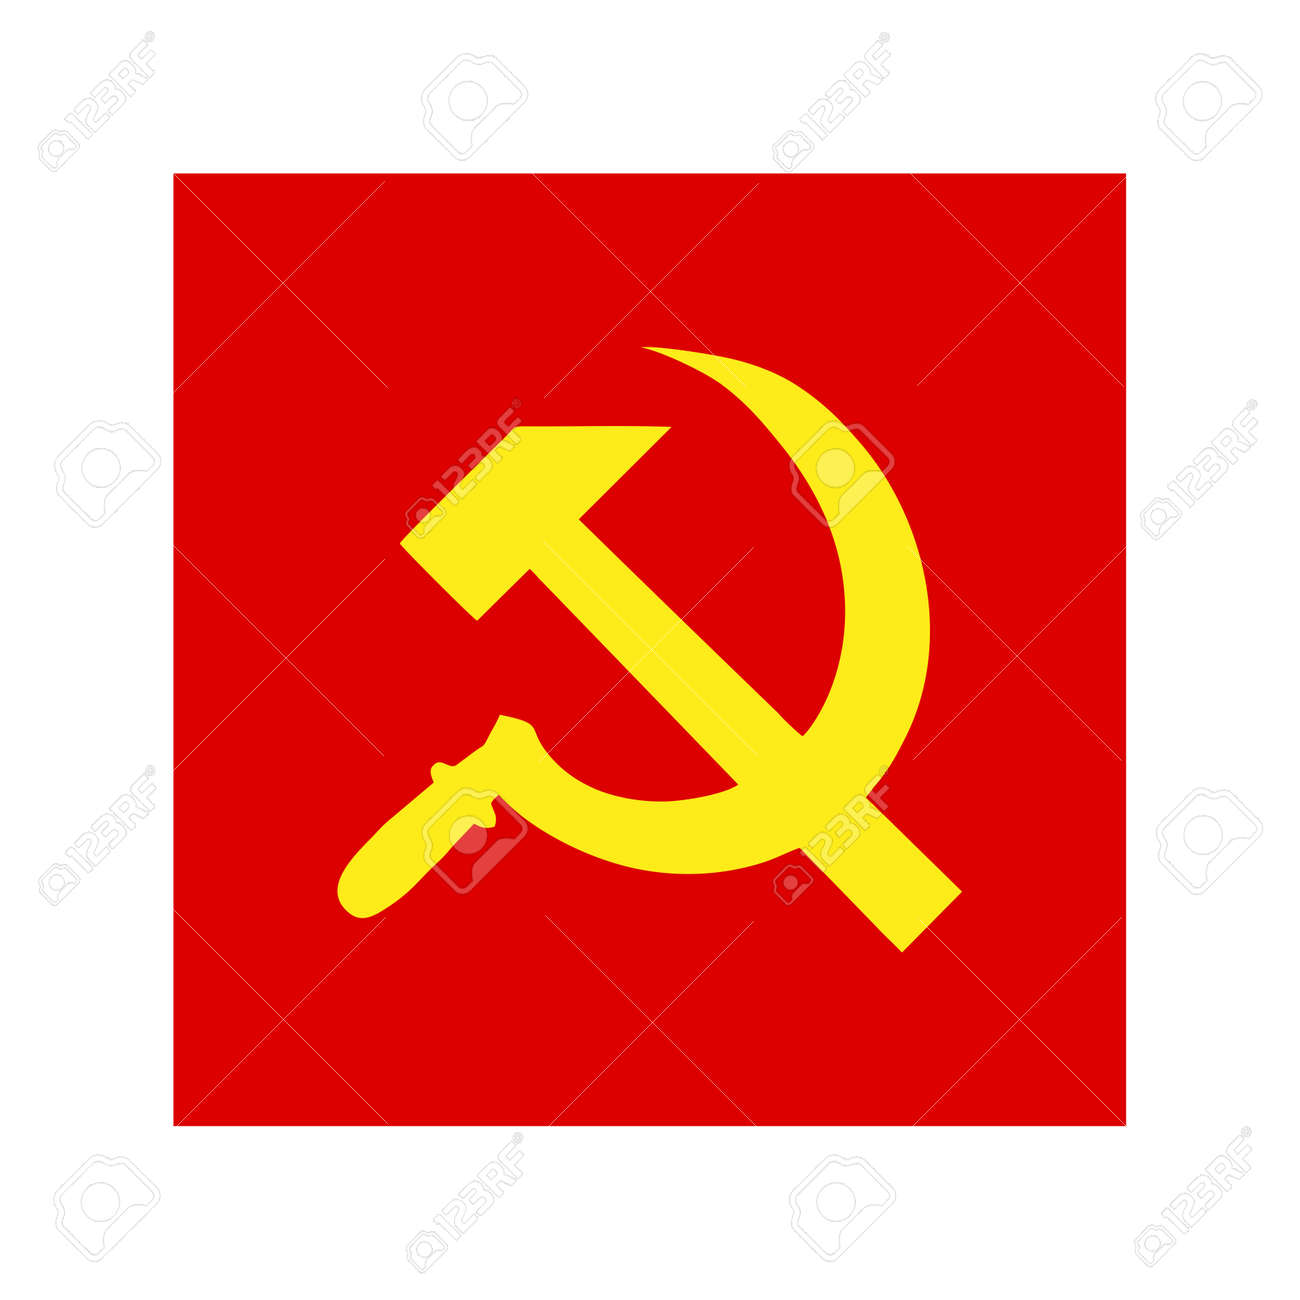 Ussr Sickle And Hammer Symbol